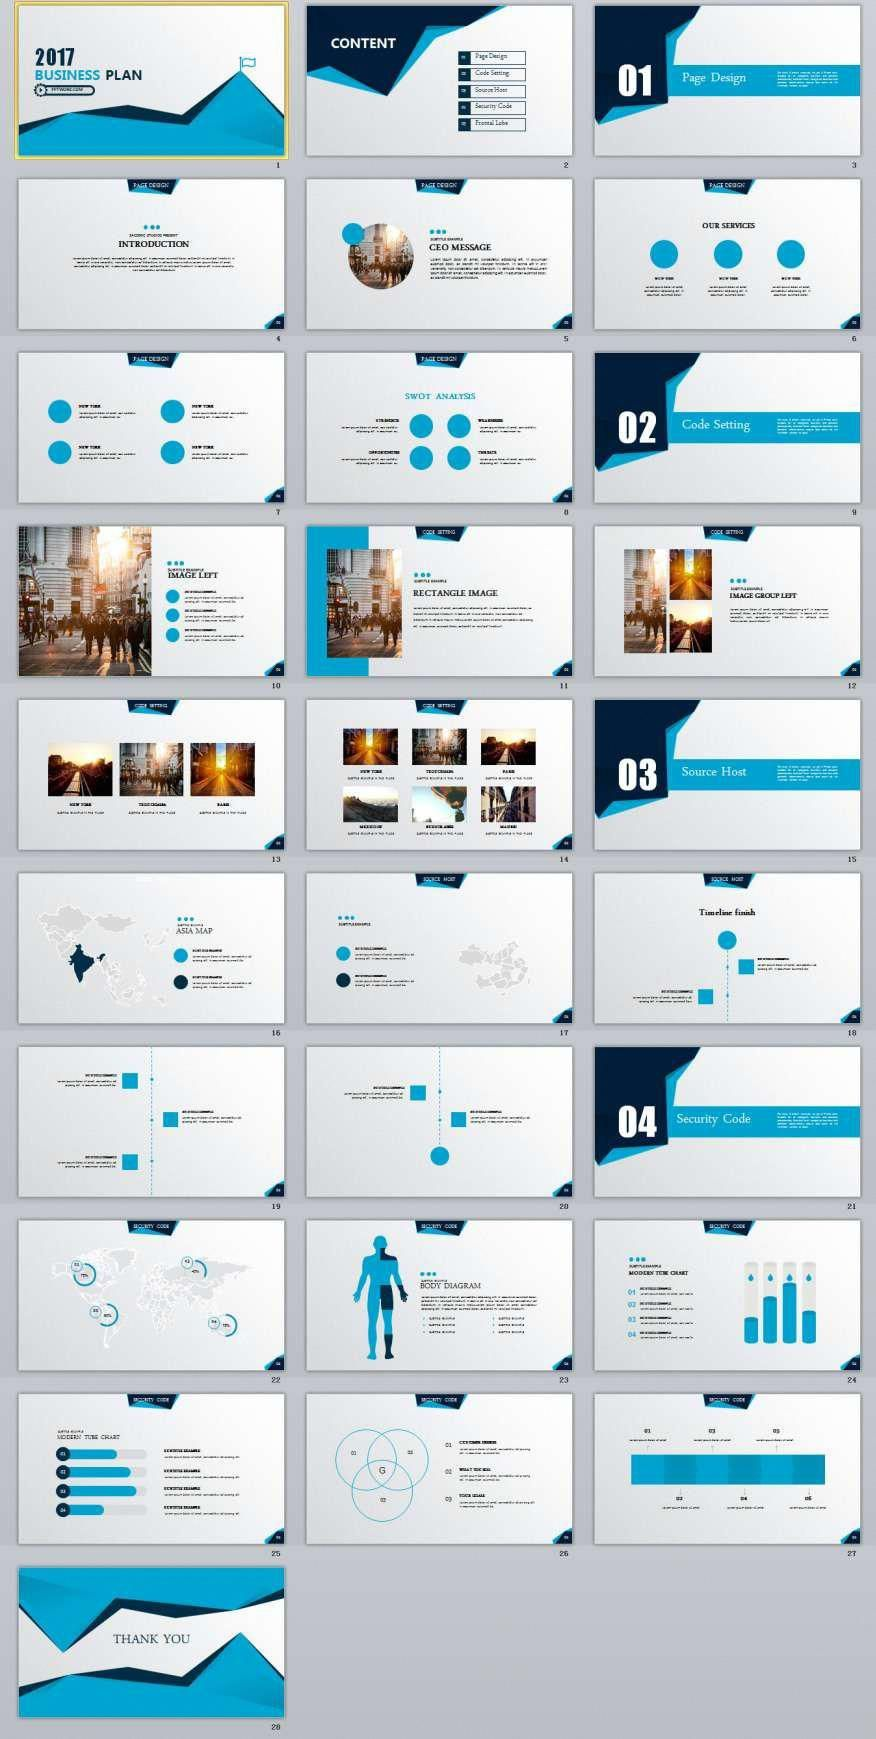 28 Best Business Plan Powerpoint Templates 차트 디자인